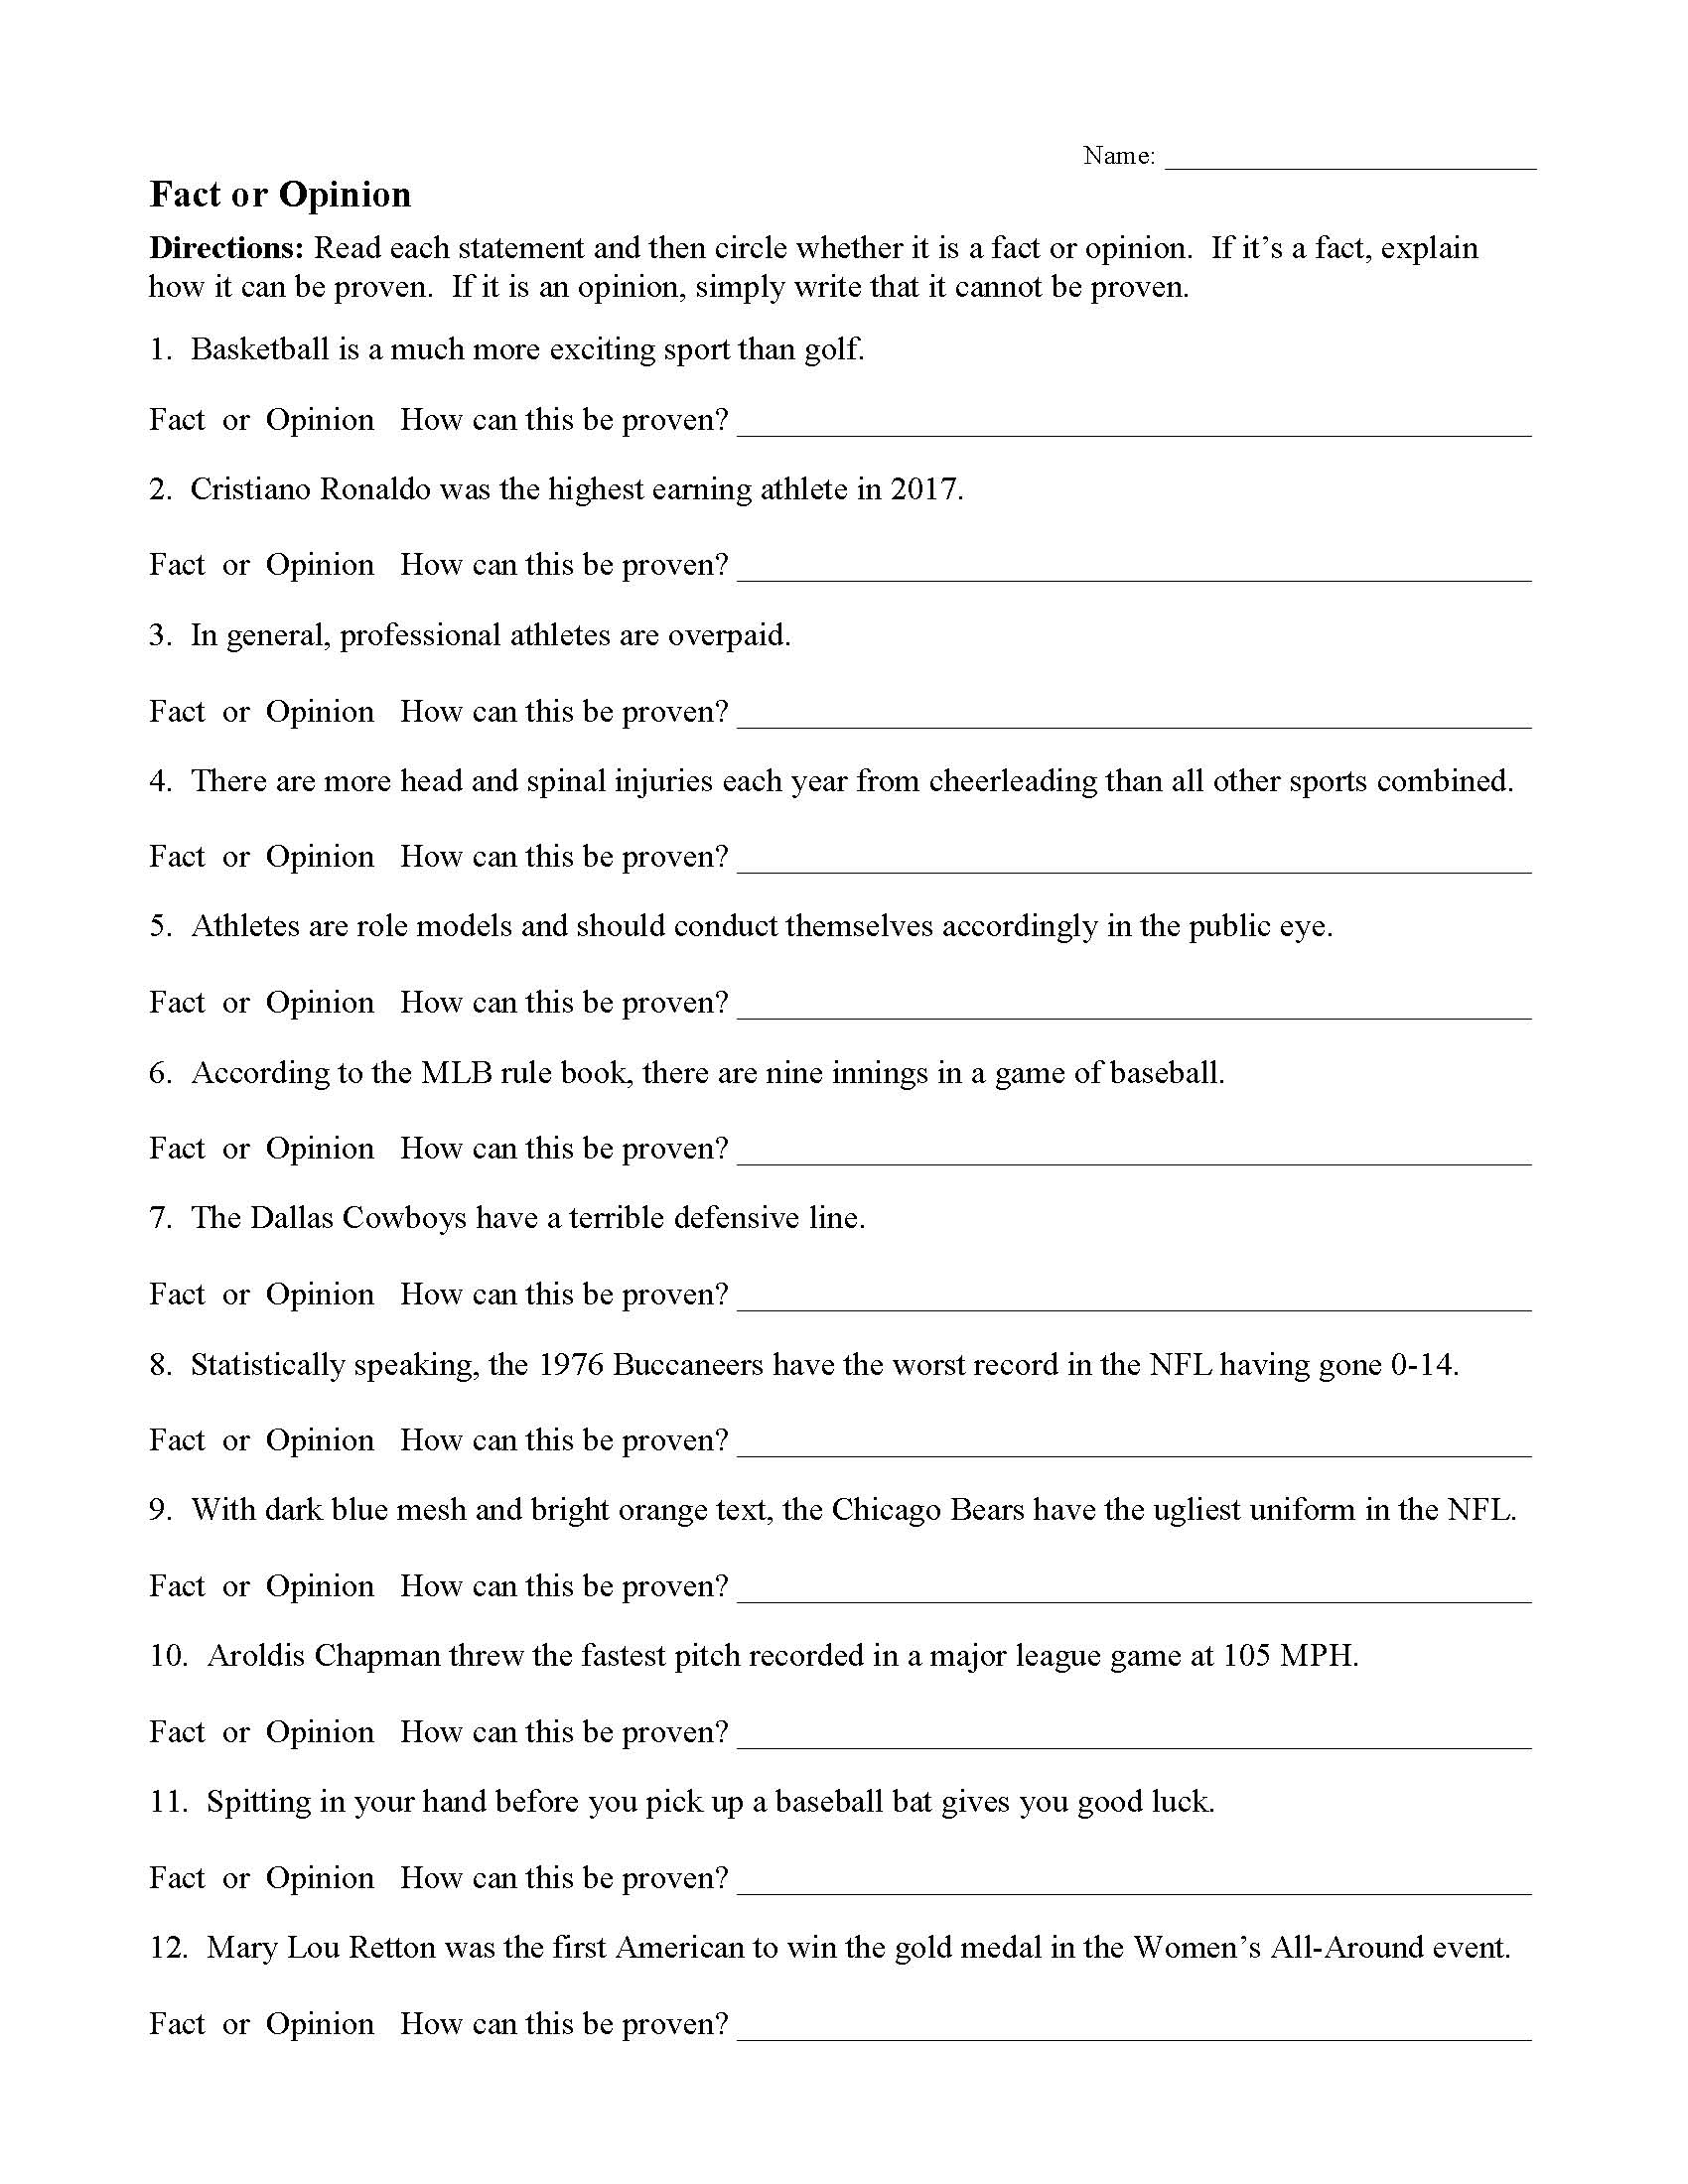 Fact Opinion Worksheet Middle School